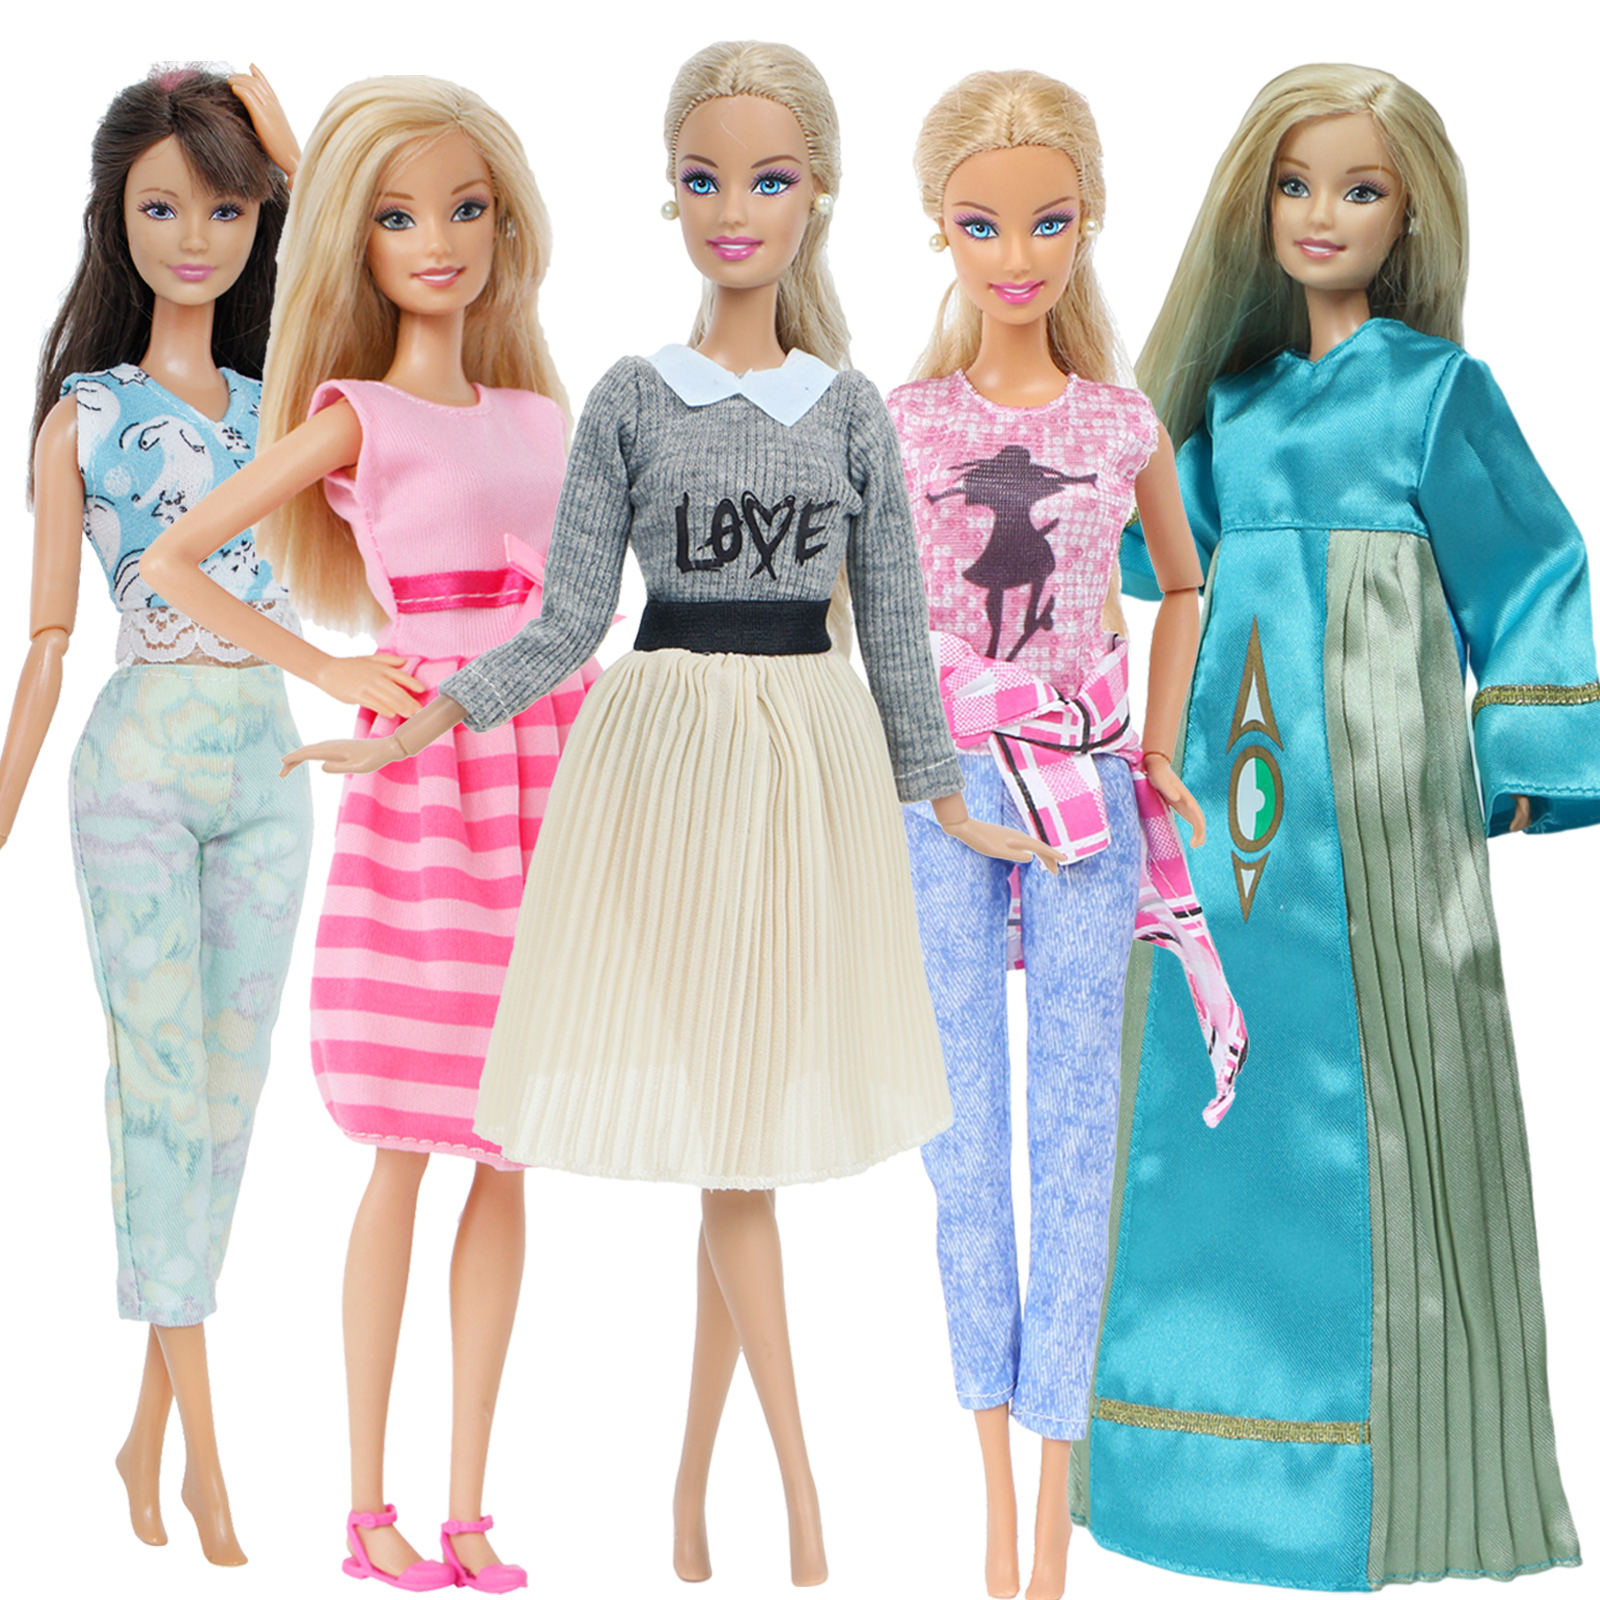 5 Pcs / Set Handmade Doll Outfit Mixed Style Mini Dress Pants Tops Coat Gown Daily Clothes For Barbie Doll Accssories Kids Toy